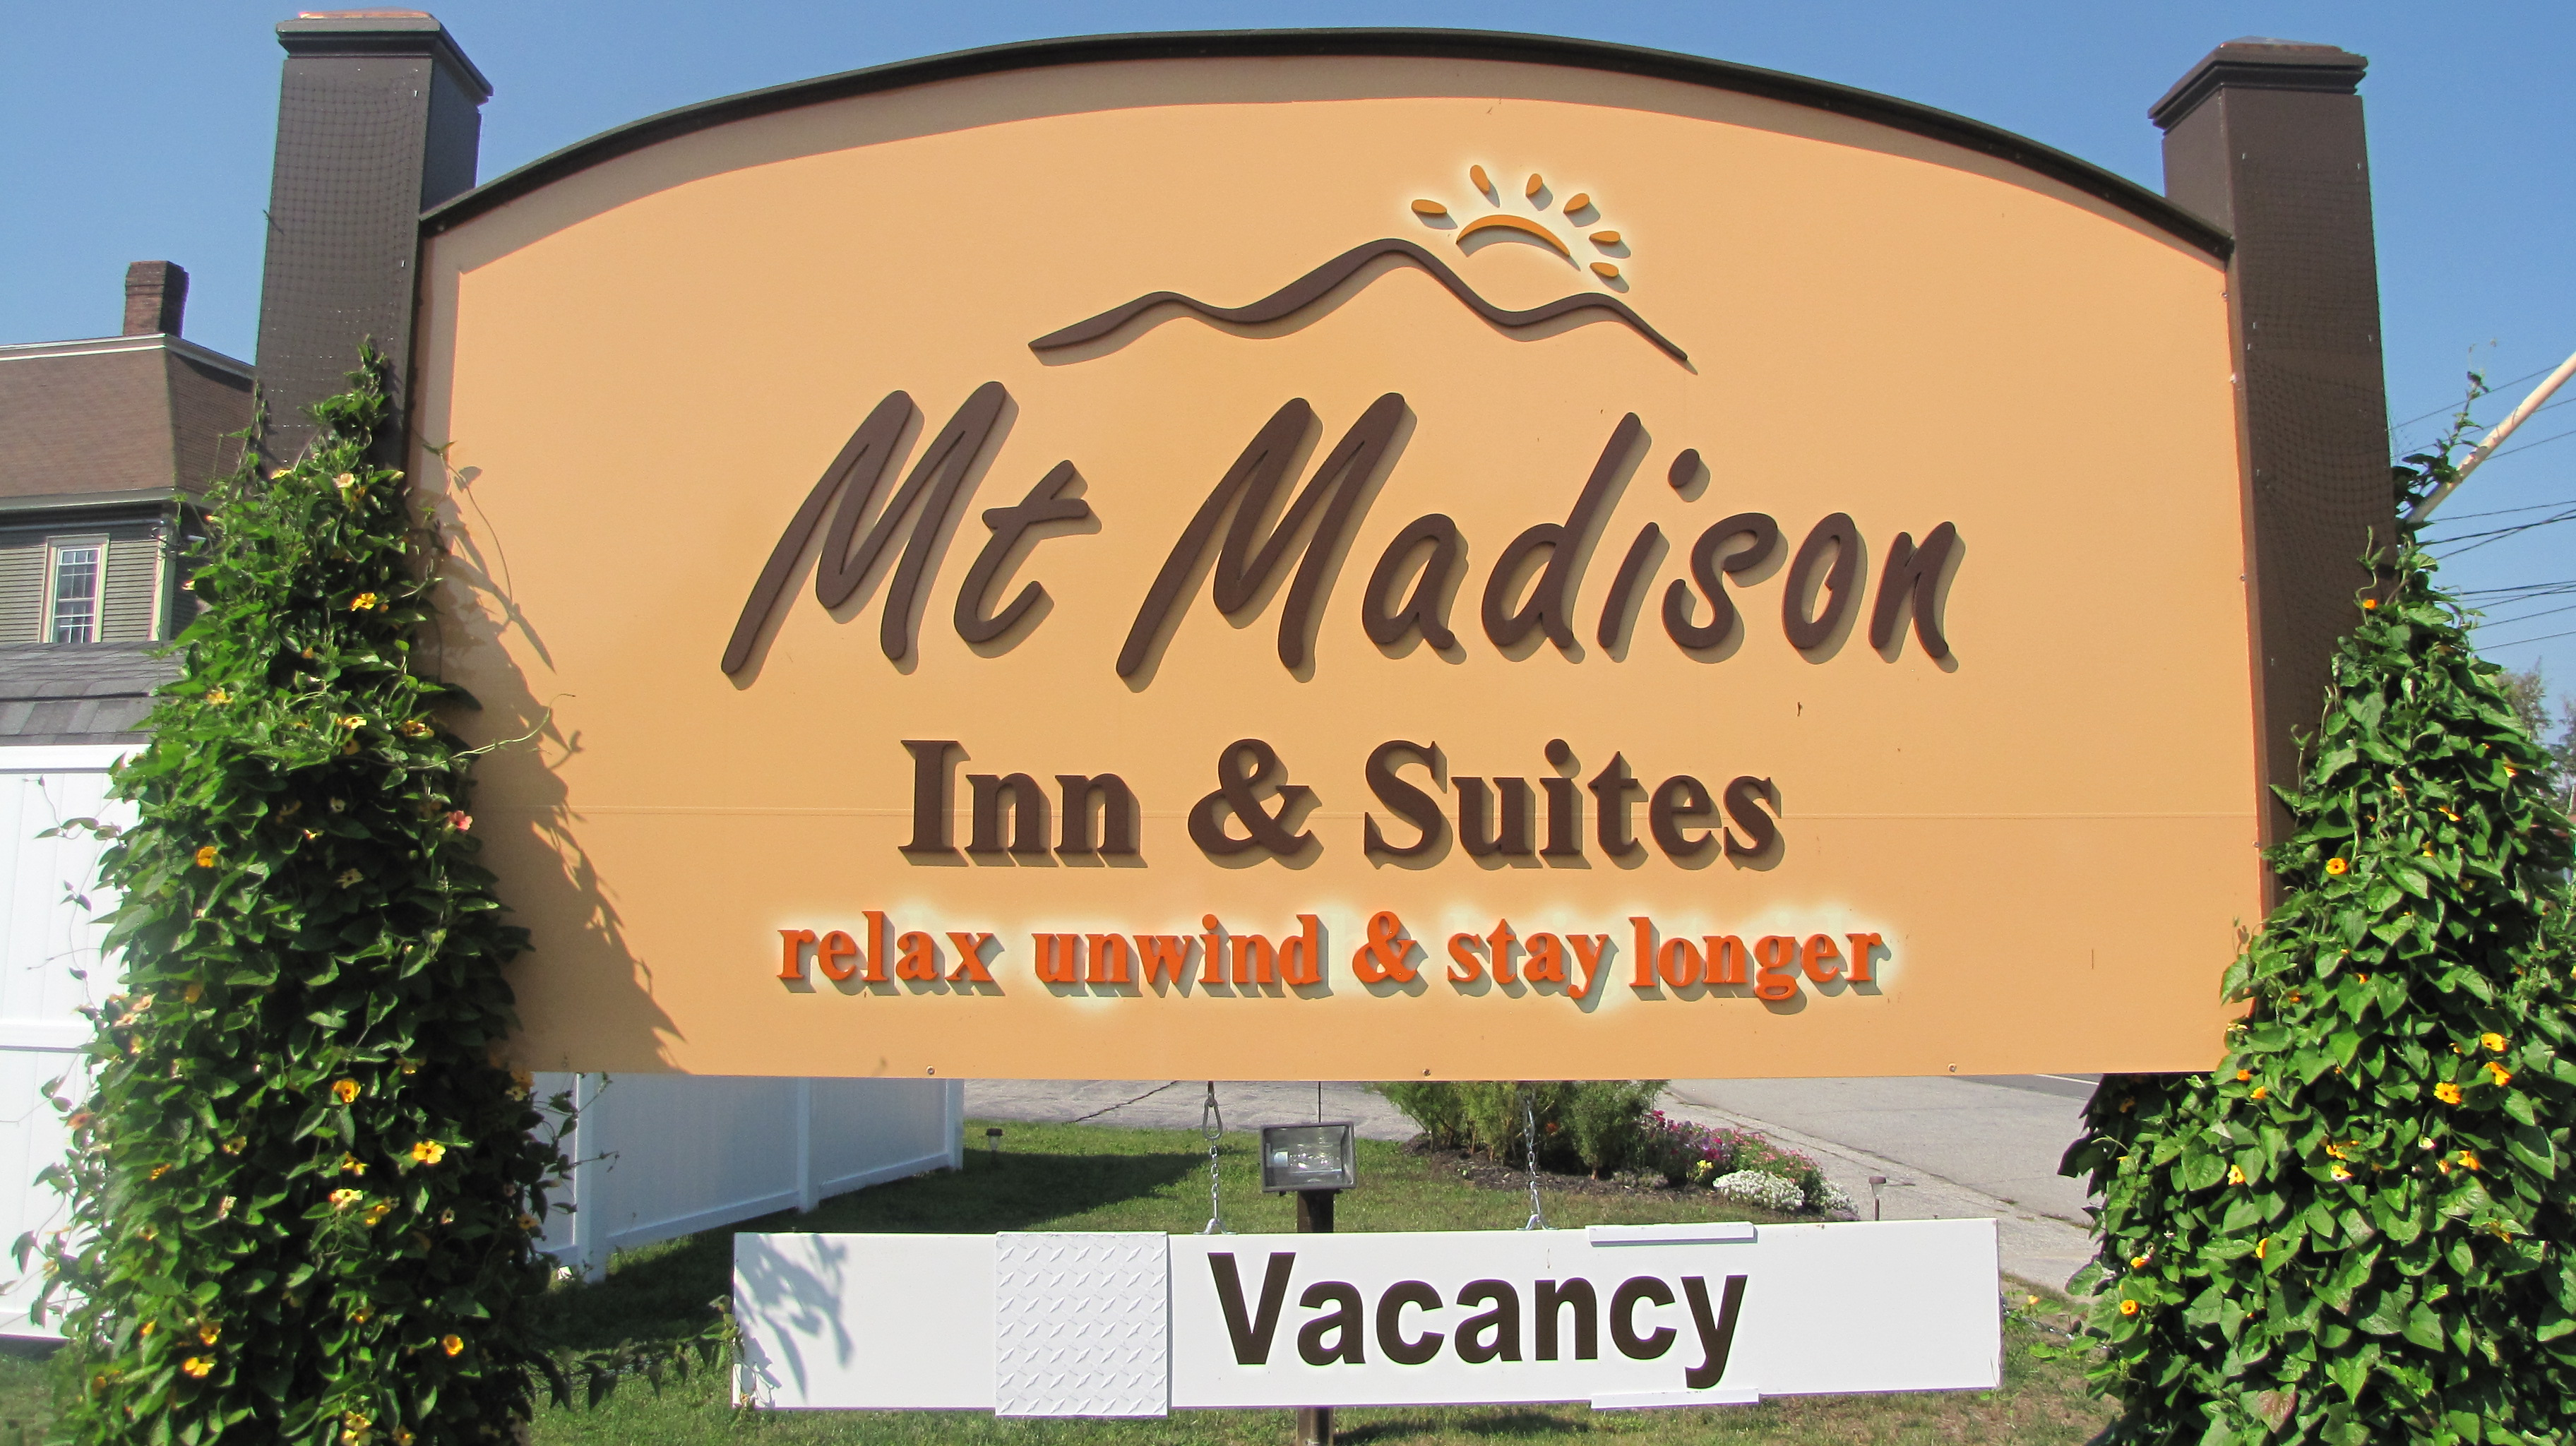 Mt Madison Inn & Suites